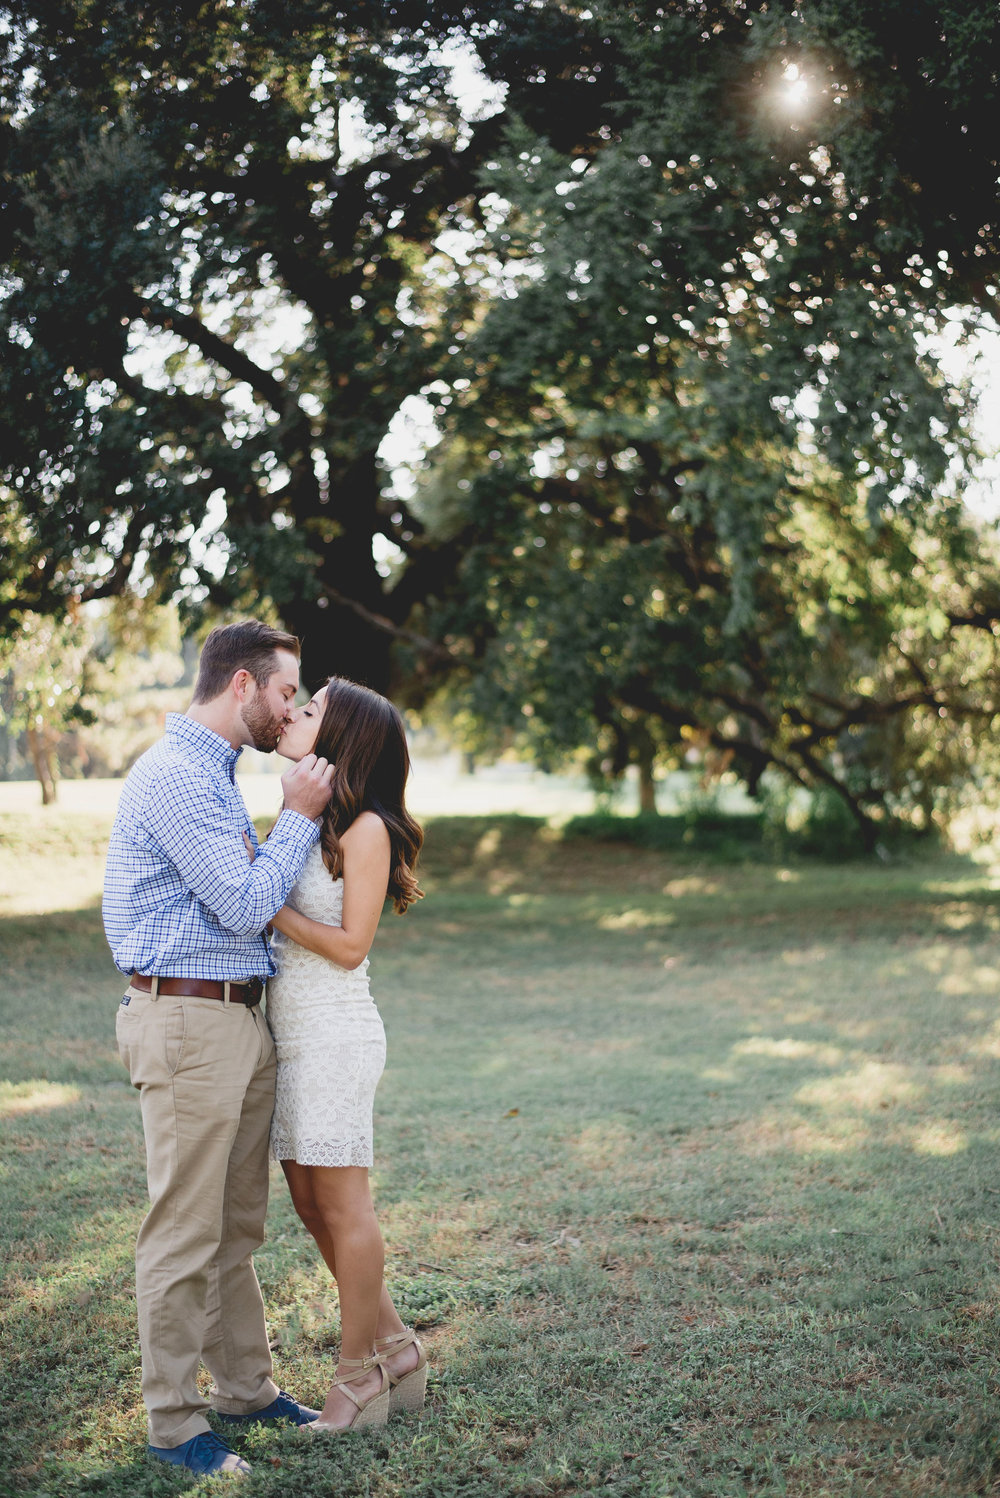 Austin Wedding Photographer ATX Engagement Session at Townlake15.jpg